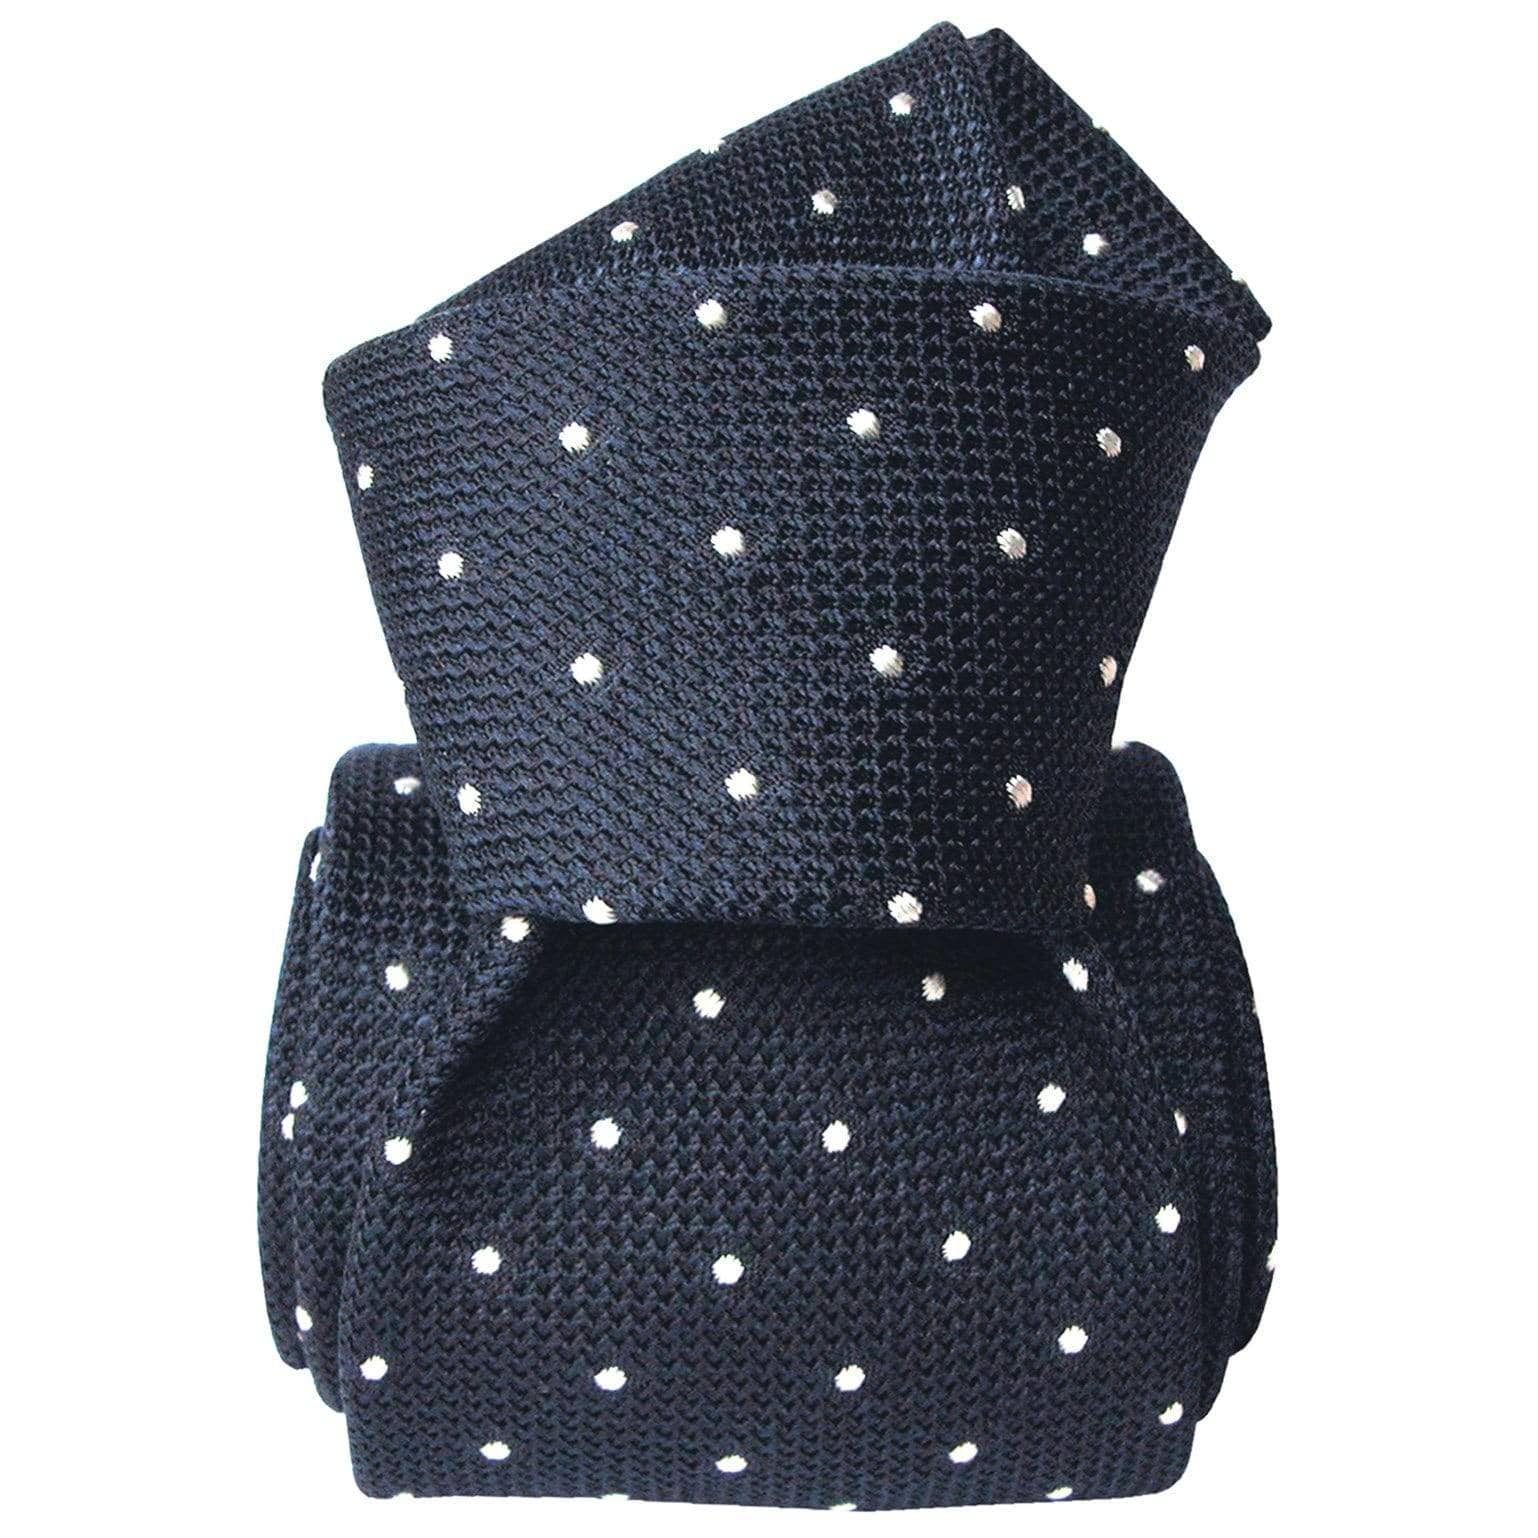 Navy Silk Grenadine Tie - White Woven Polka Dots